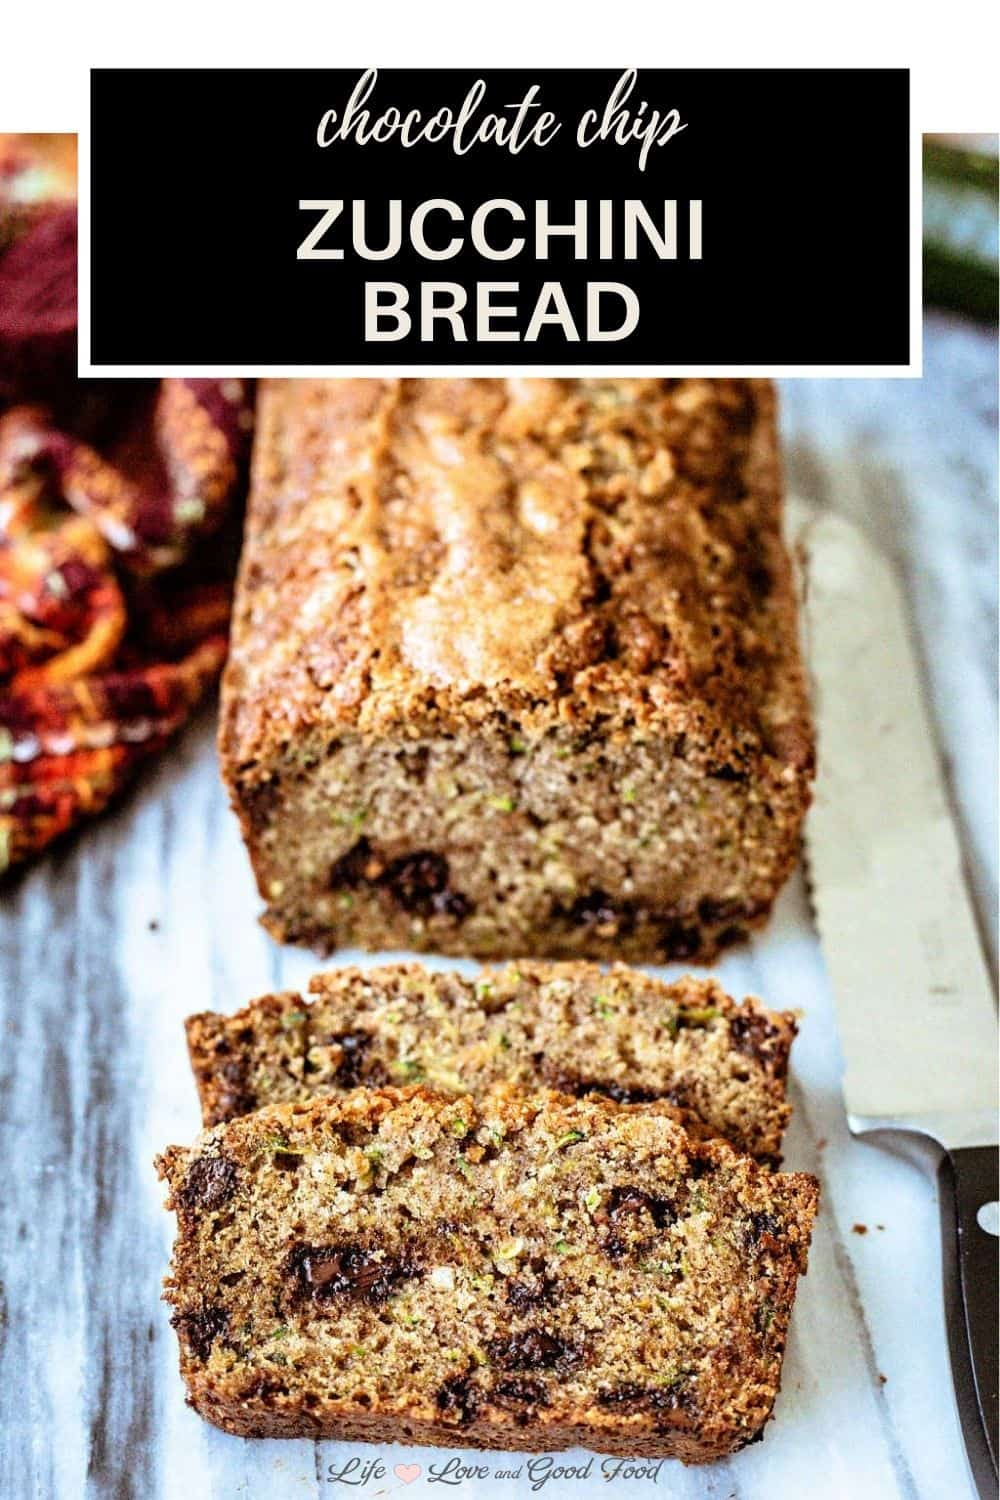 What more indulgent way to enjoy that abundance of Summer zucchini than baked up in a quick bread studded with chocolate chips? This Chocolate Chip Zucchini Bread is super moist, bakes in about 50 minutes, and tastes even better the next day.